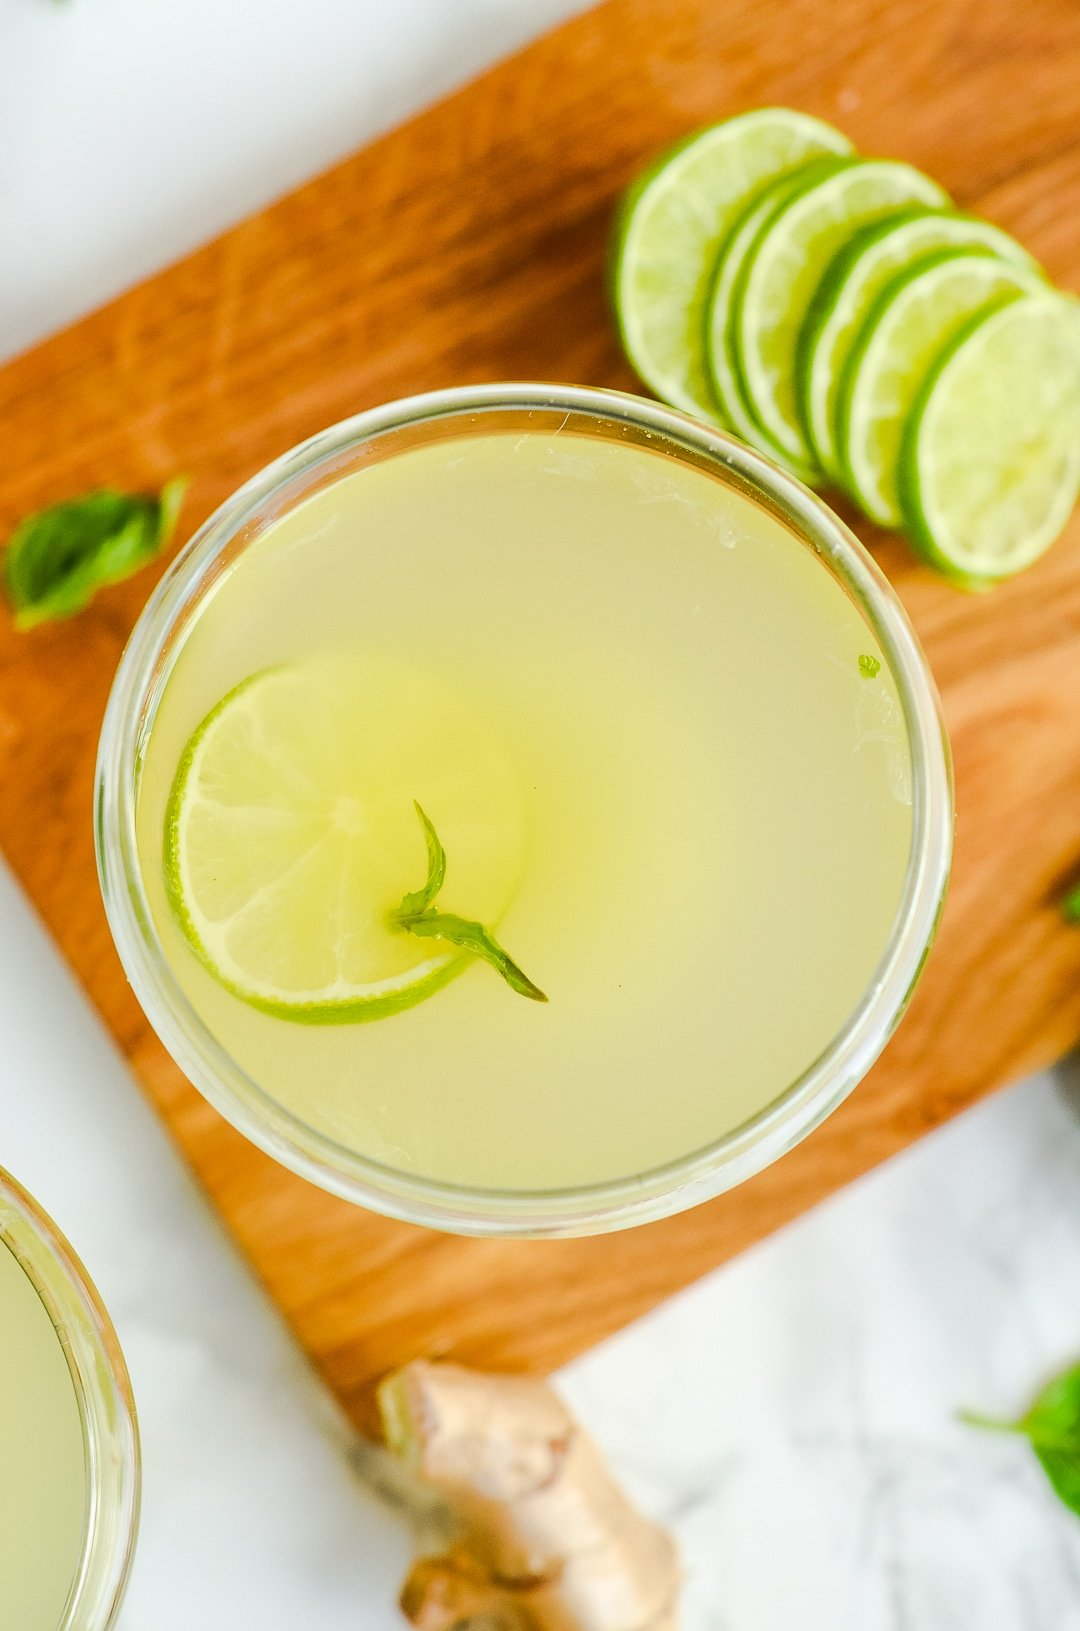 The Aromatic Arousal Cocktail (Basil Ginger Gimlet) is made with 2 of the strongest aromatic aphrodisiacs, which makes it alluring, seductive, and arousing.